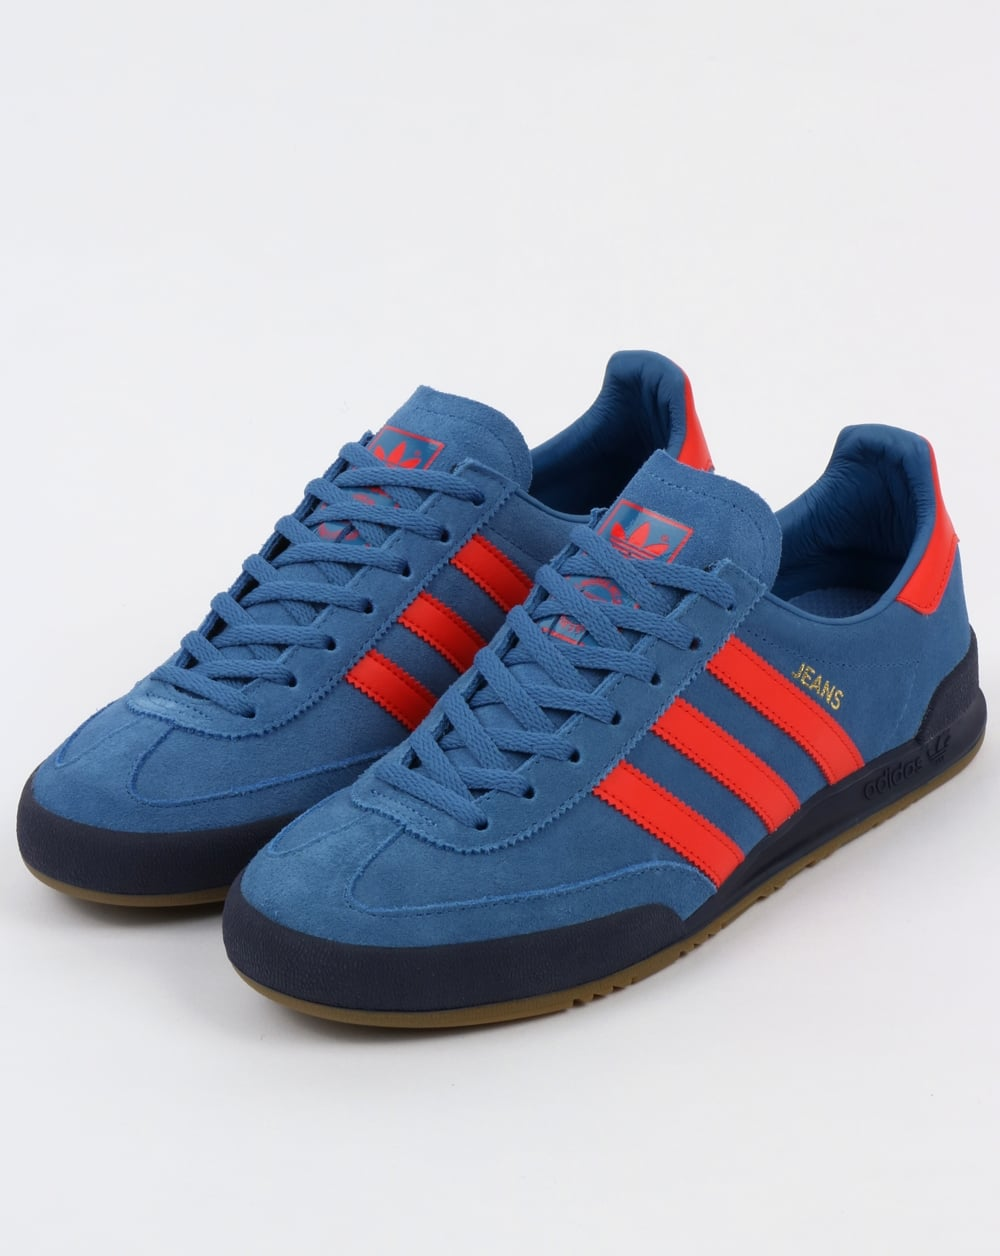 Adidas Jeans Trainers Royal Red Blue Trace Suede